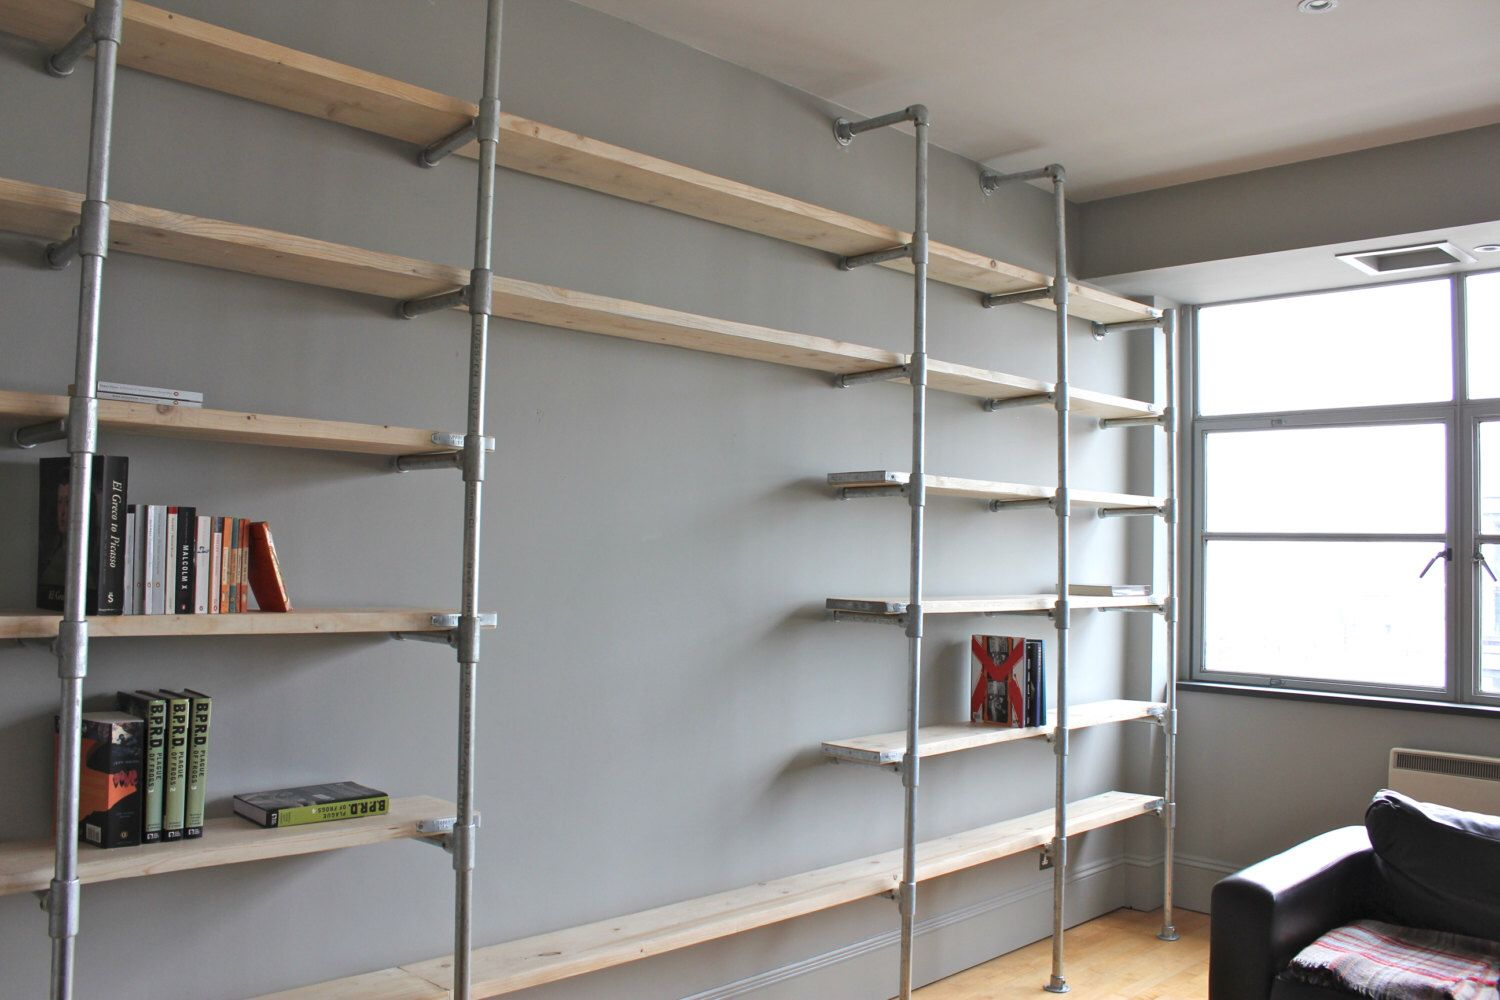 Scaffolding Boards and Galvanised Steel Pipe Wall Mounted and Floor Standing Industrial Shelving/Bookcase - Bespoke Urban FurnitureDesign door inspiritdeco op Etsy https://www.etsy.com/nl/listing/184216108/scaffolding-boards-and-galvanised-steel